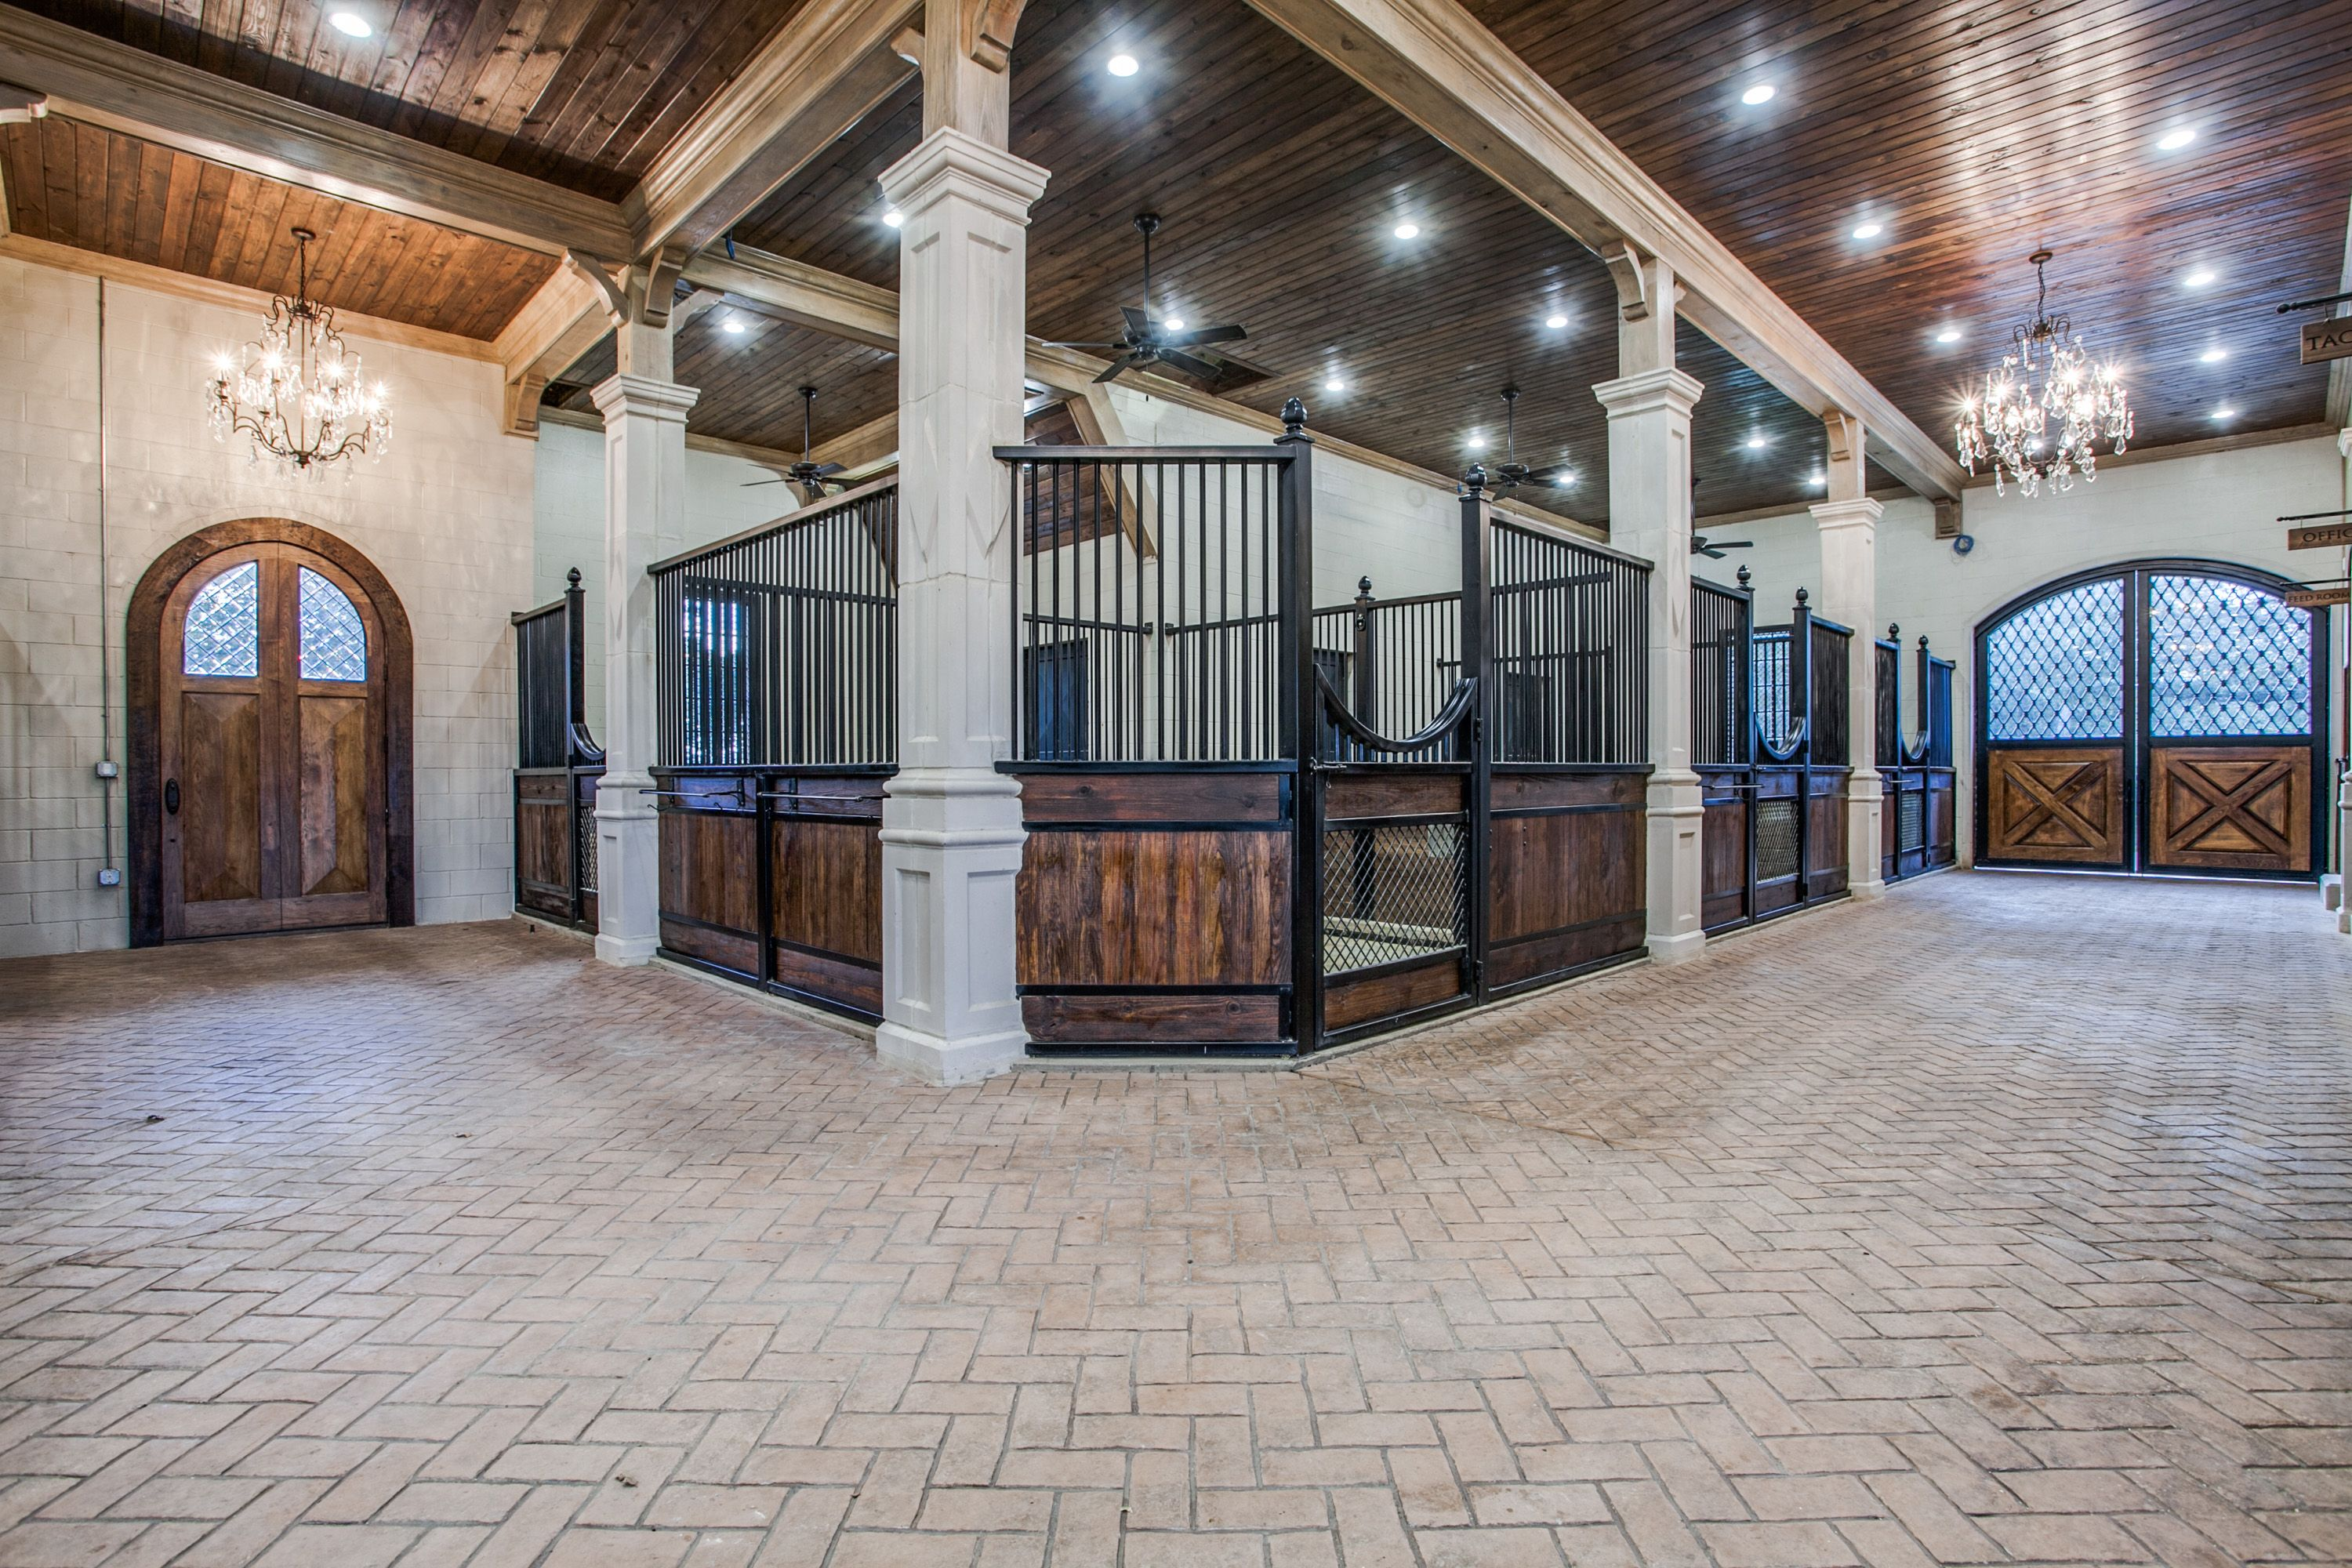 Barn isle | Luxury horse stables, Horse stables, Luxury ...